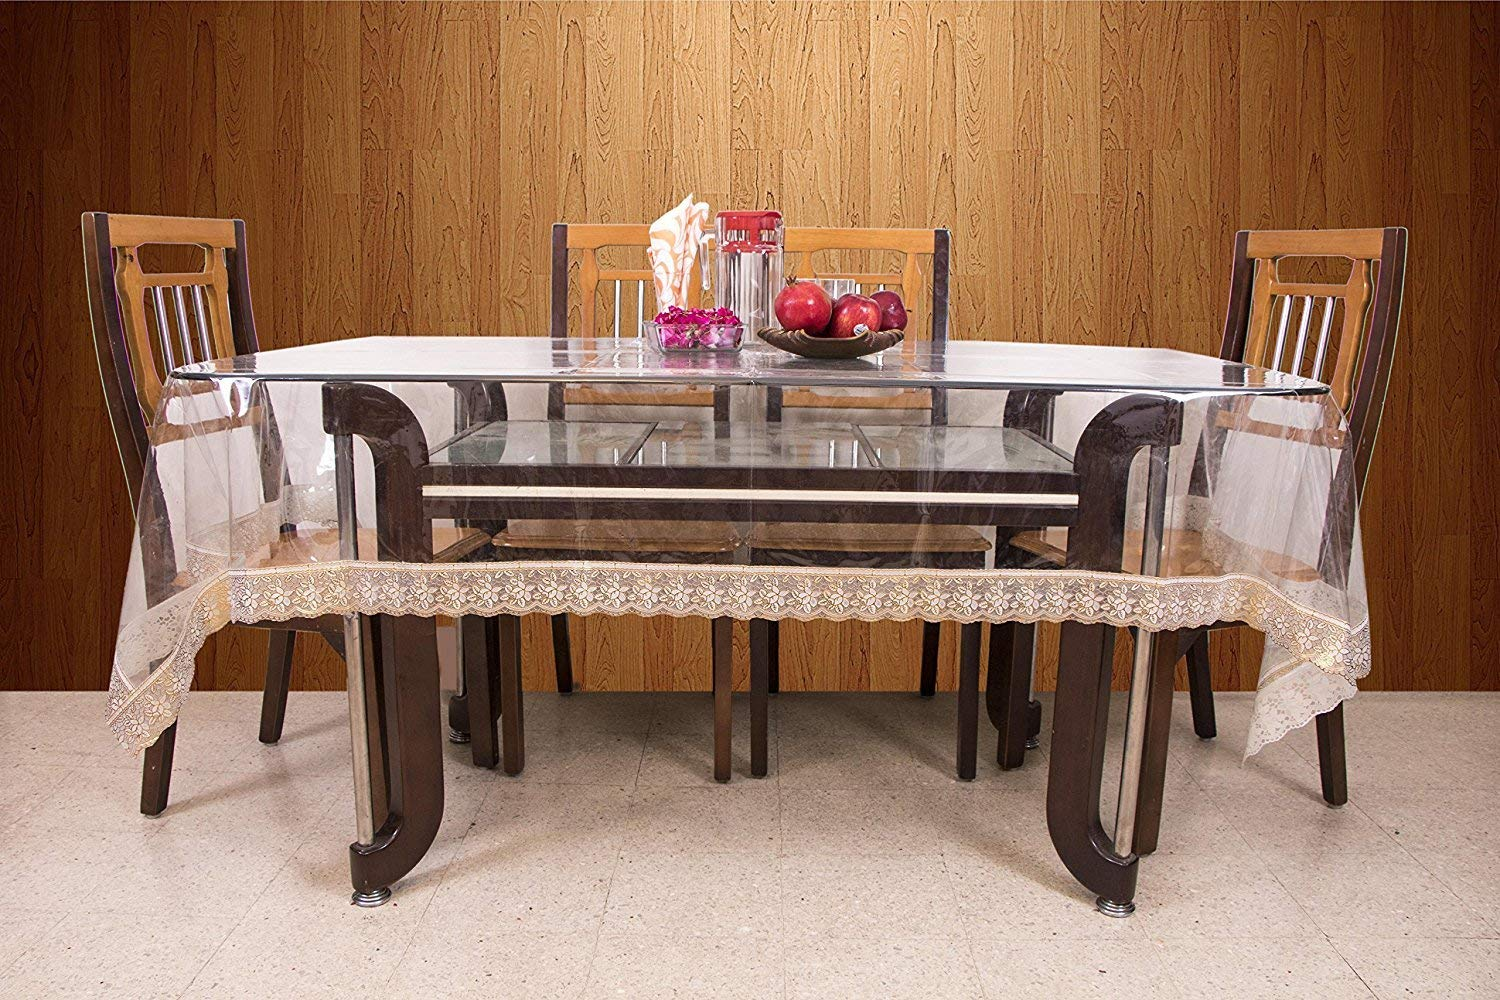 8 seater extending dining table white get quotations kuber industries20 mm dining table cover transparent seater 45x70 inches golden lace cheap extending table find